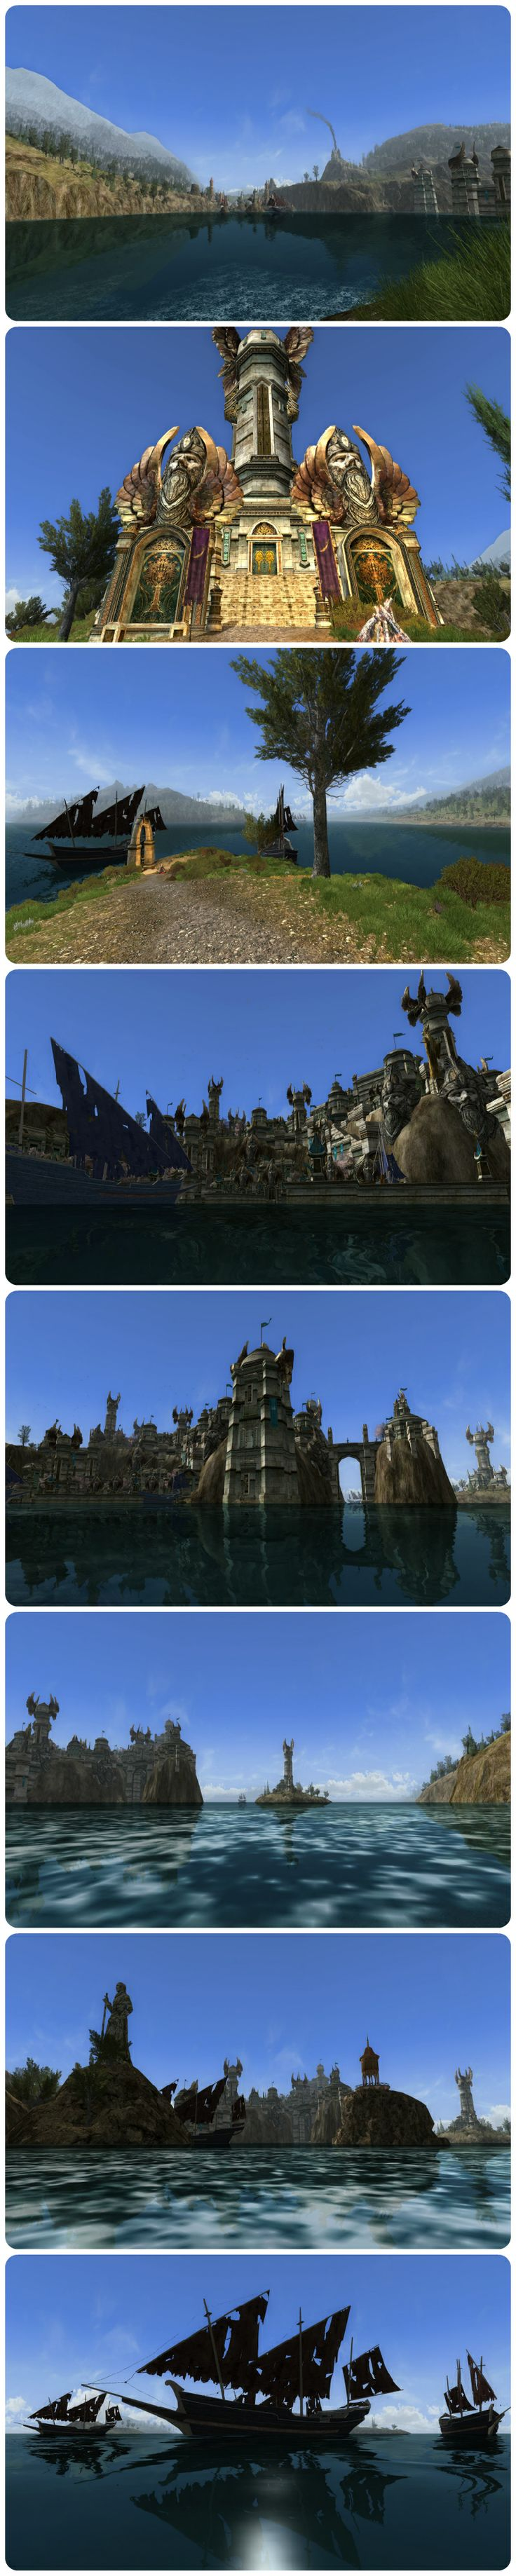 LOTRO Western Gondor preview. For more pics visit: http://www.containsmoderateperil.com/western-gondor-preview/